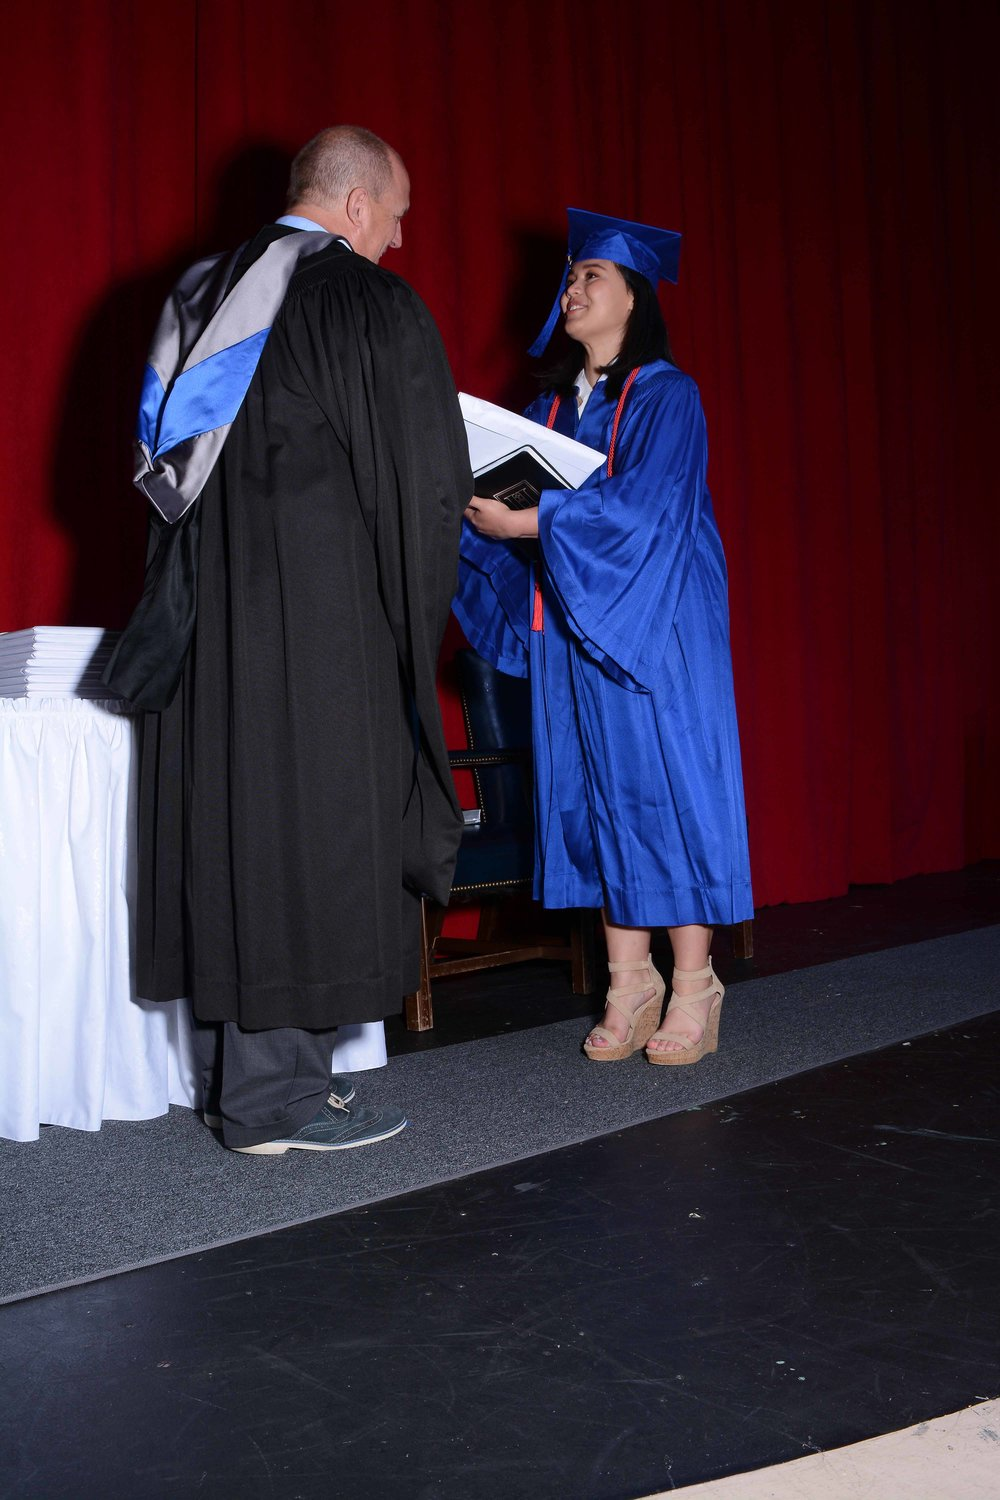 May14 Commencement60.jpg